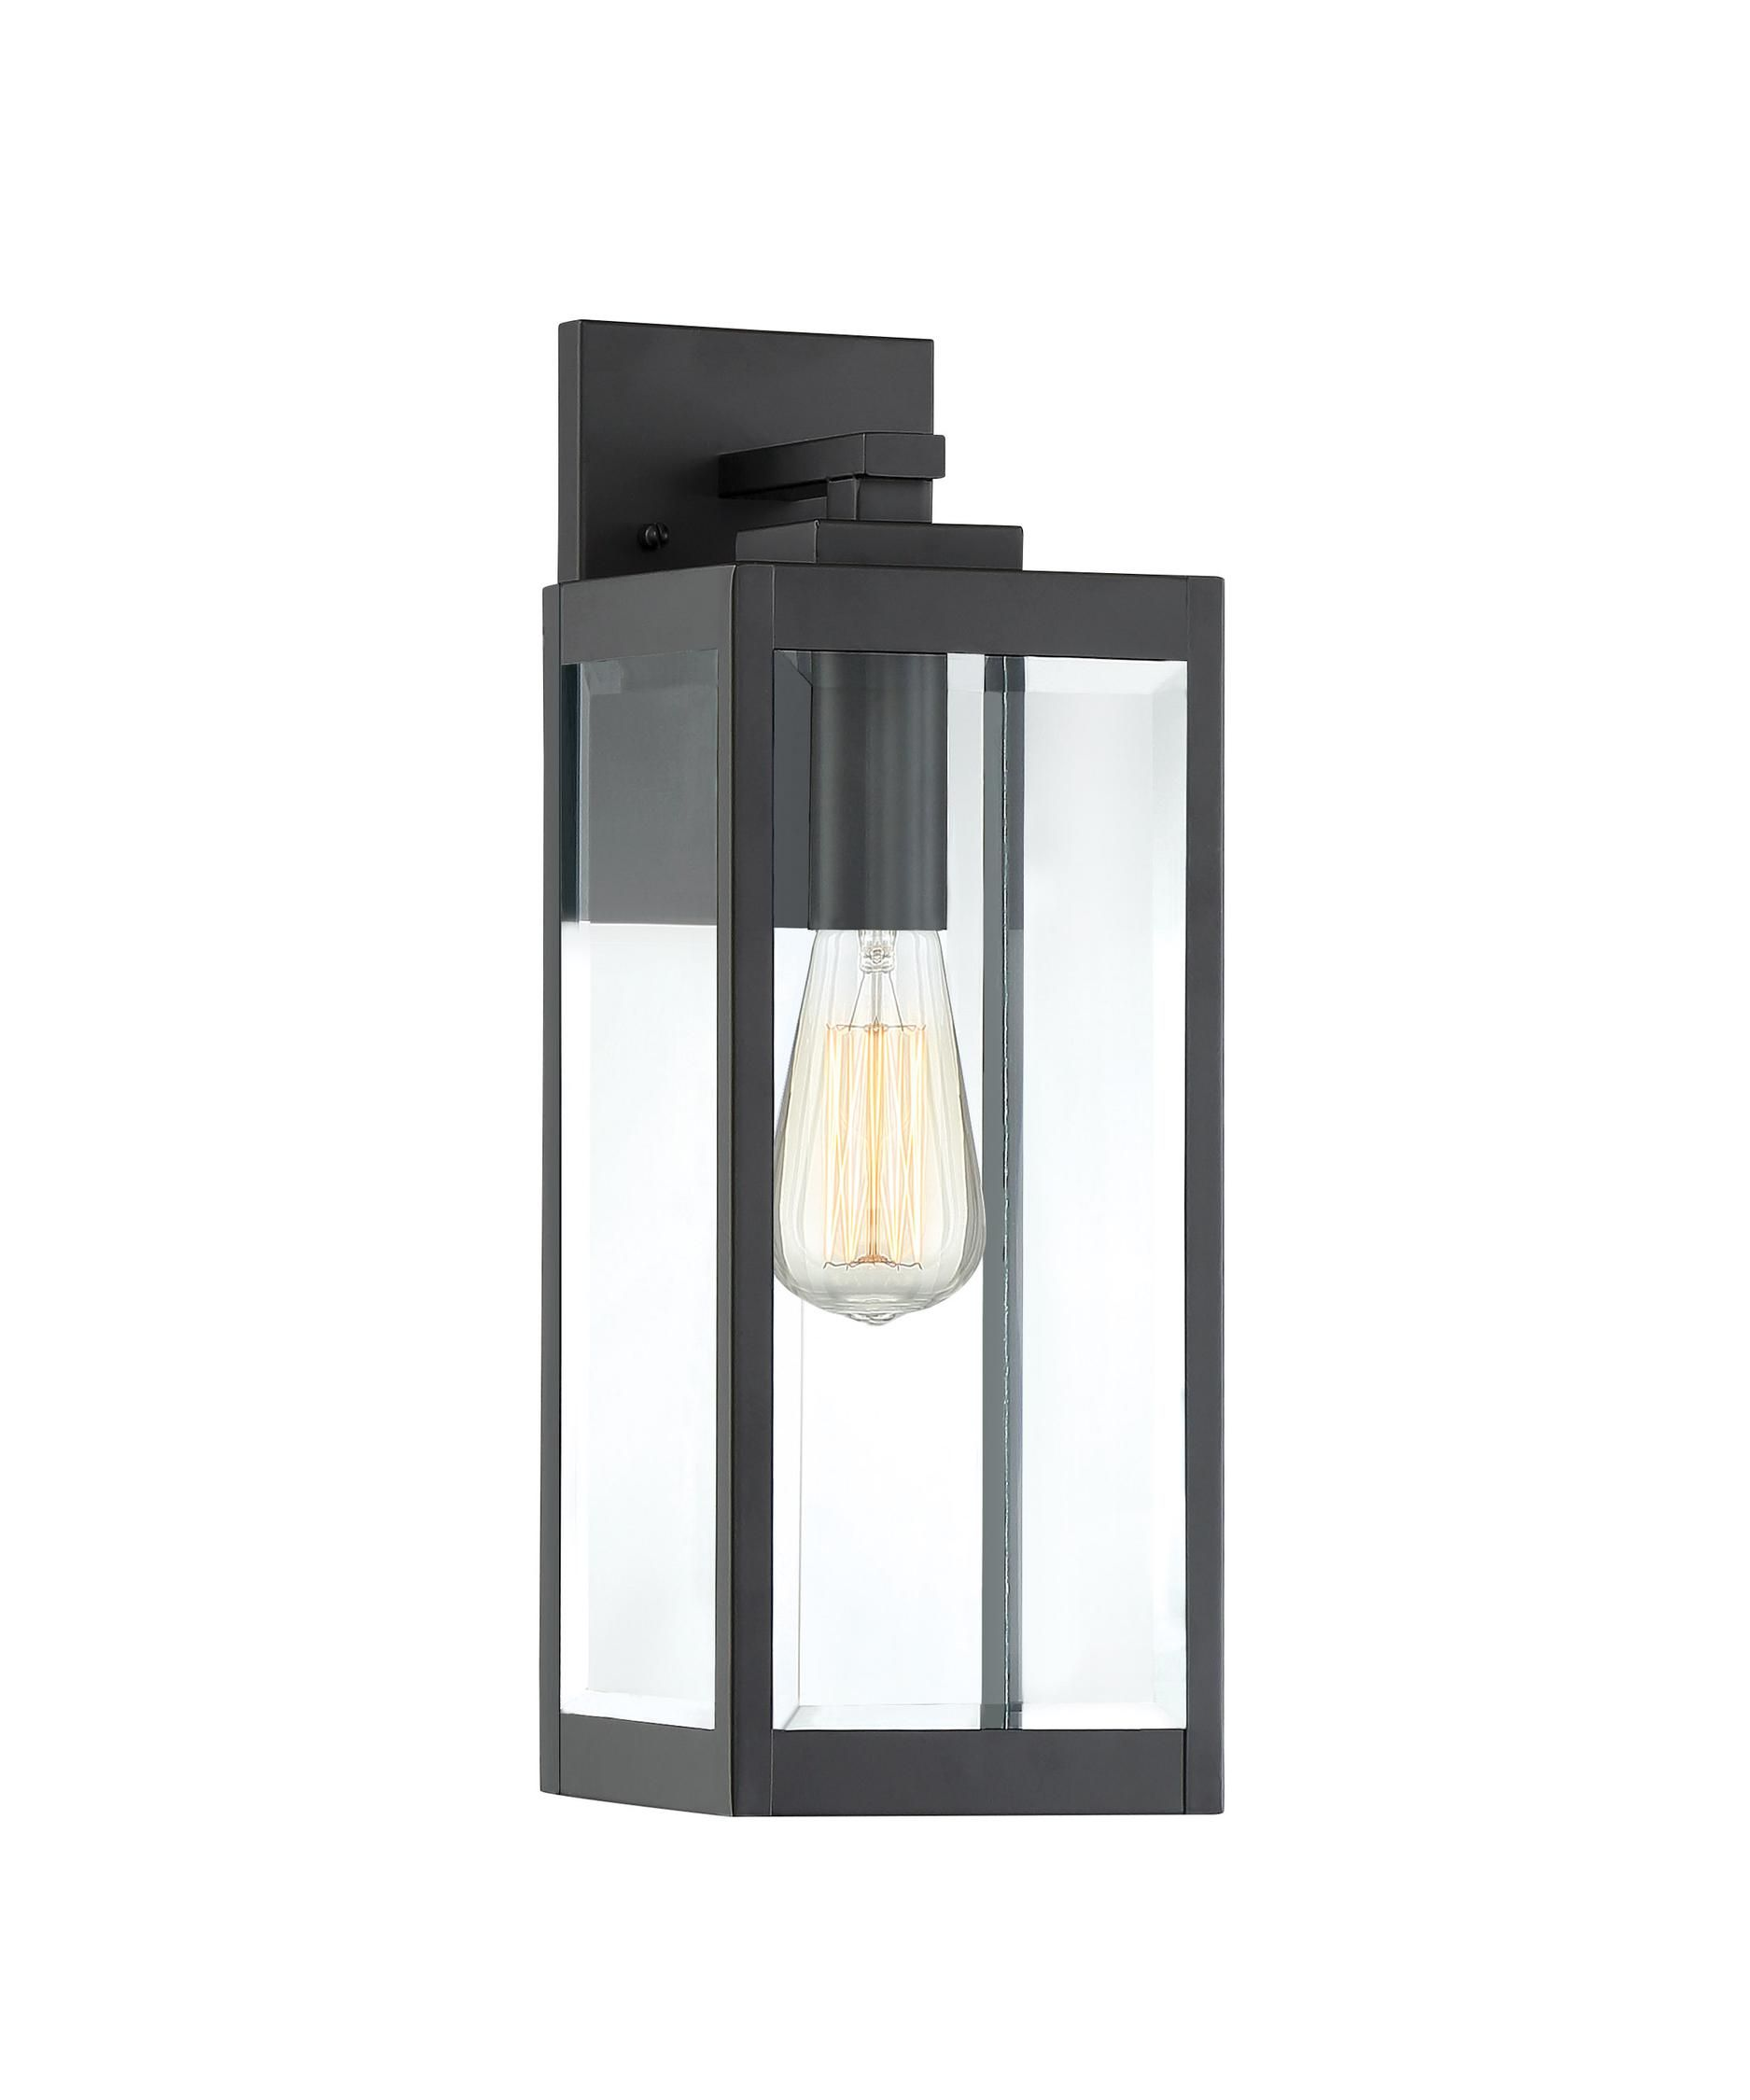 Westover 17 Inch Tall 1 Light Outdoor Wall Light By Quoizel Wall Lights Outdoor Walls Outdoor Lighting